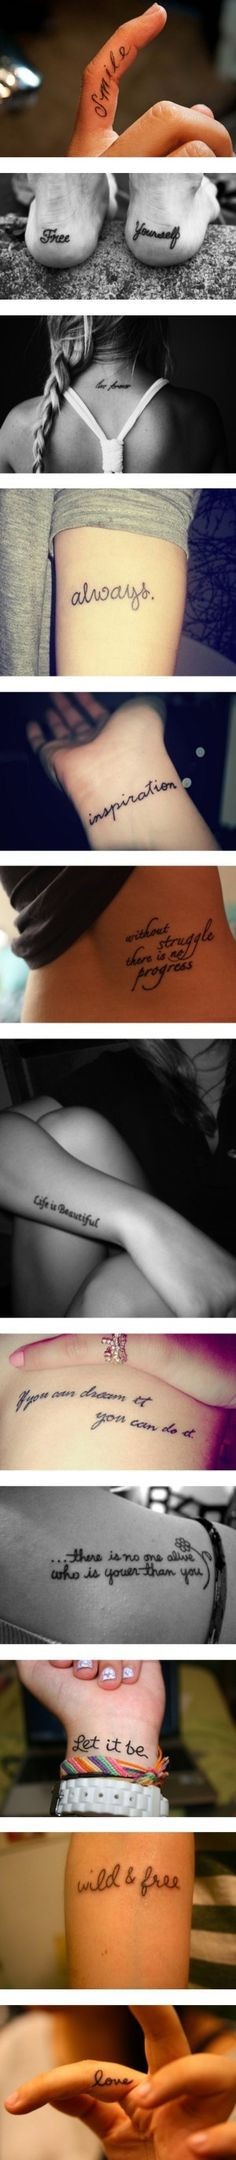 Tattoos aren't just a pretty thing that's permanent... It's a way for people to express themselves!